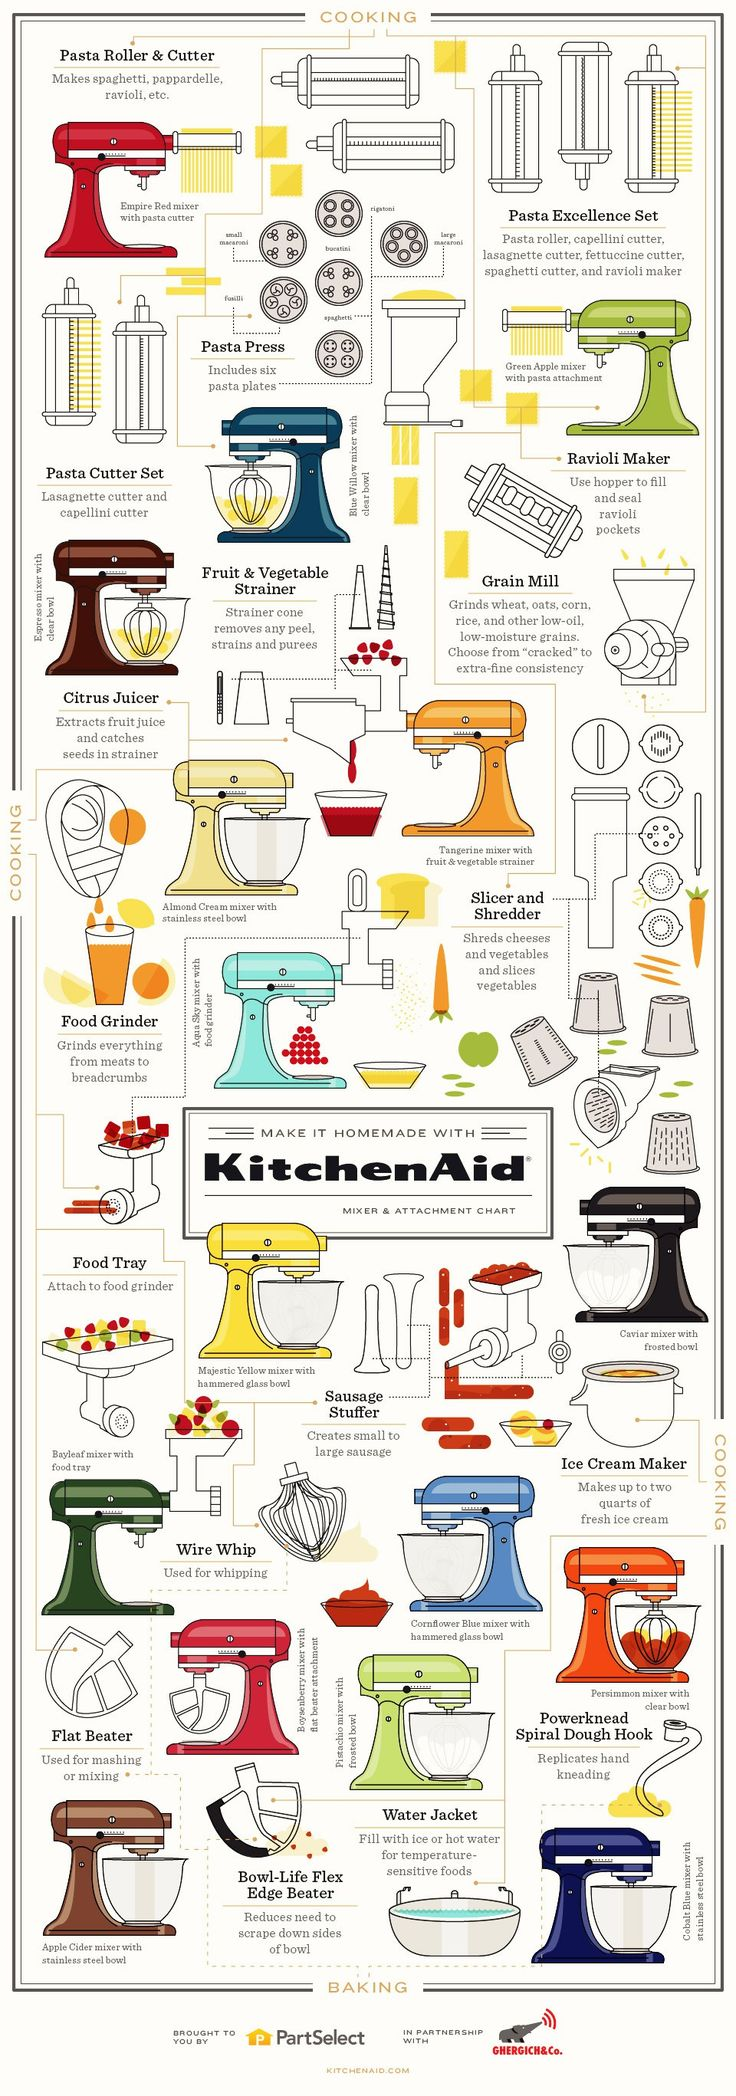 I use my KitchenAid Stand Mixer Attachments often and it allows me to confidently get what I need done in the kitchen quickly and easily.